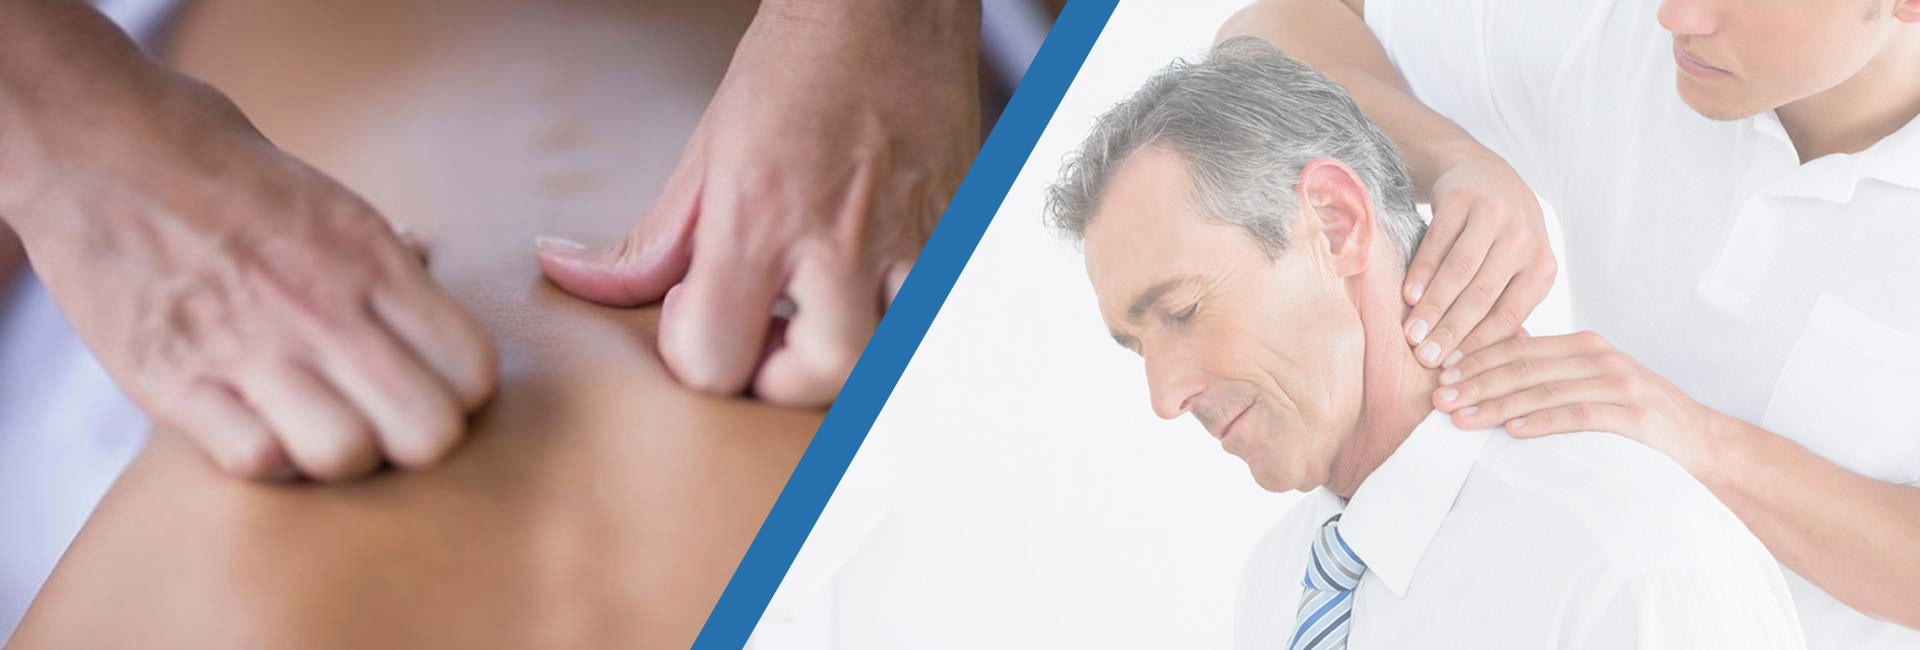 Chiropractic and Massage Services